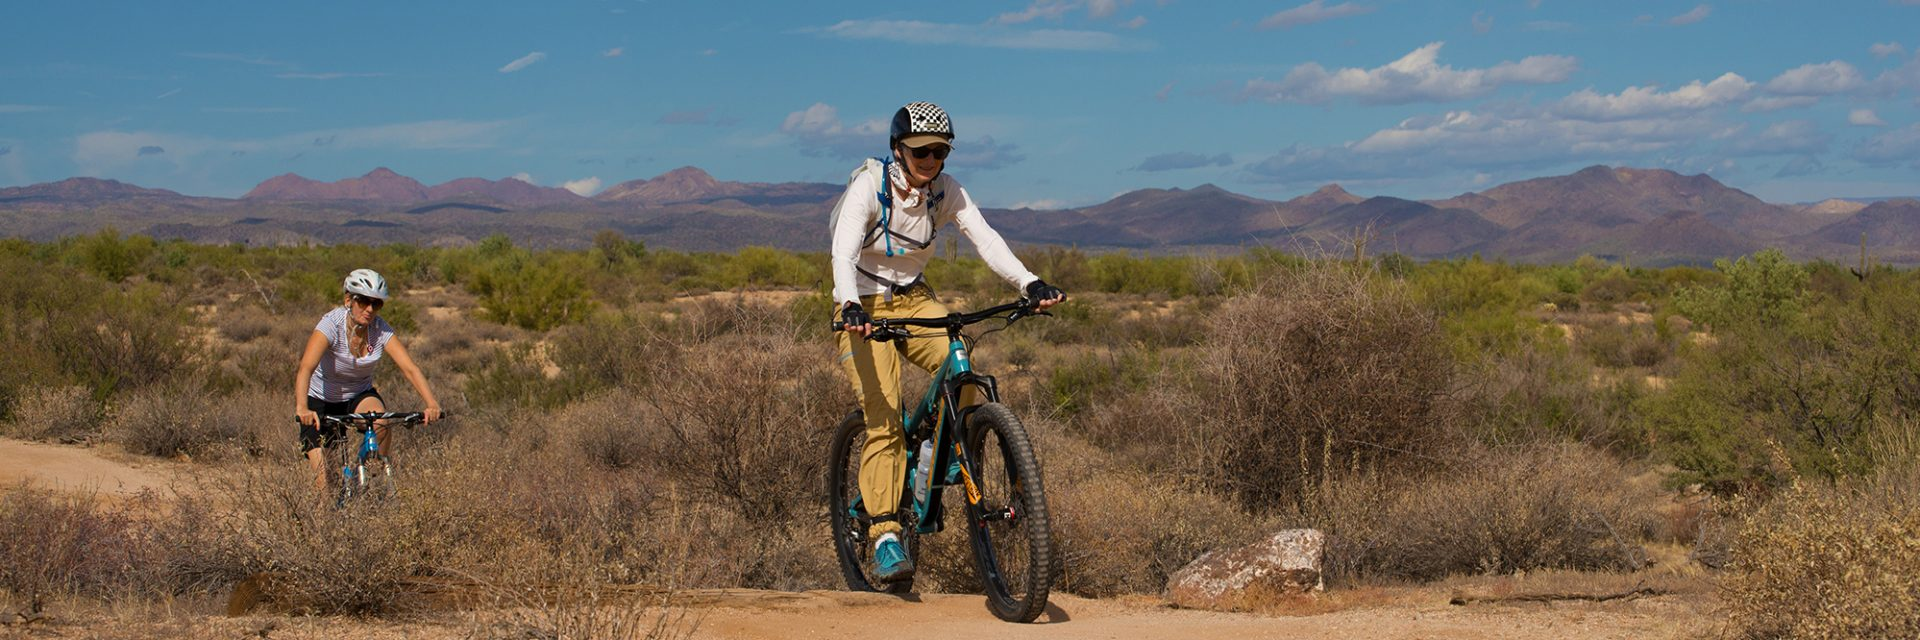 East Leg of Pemberton Trail, McDowell Mountain Park, Arizona's Sonoran Desert guided mtb tour near Phoenix, AZ